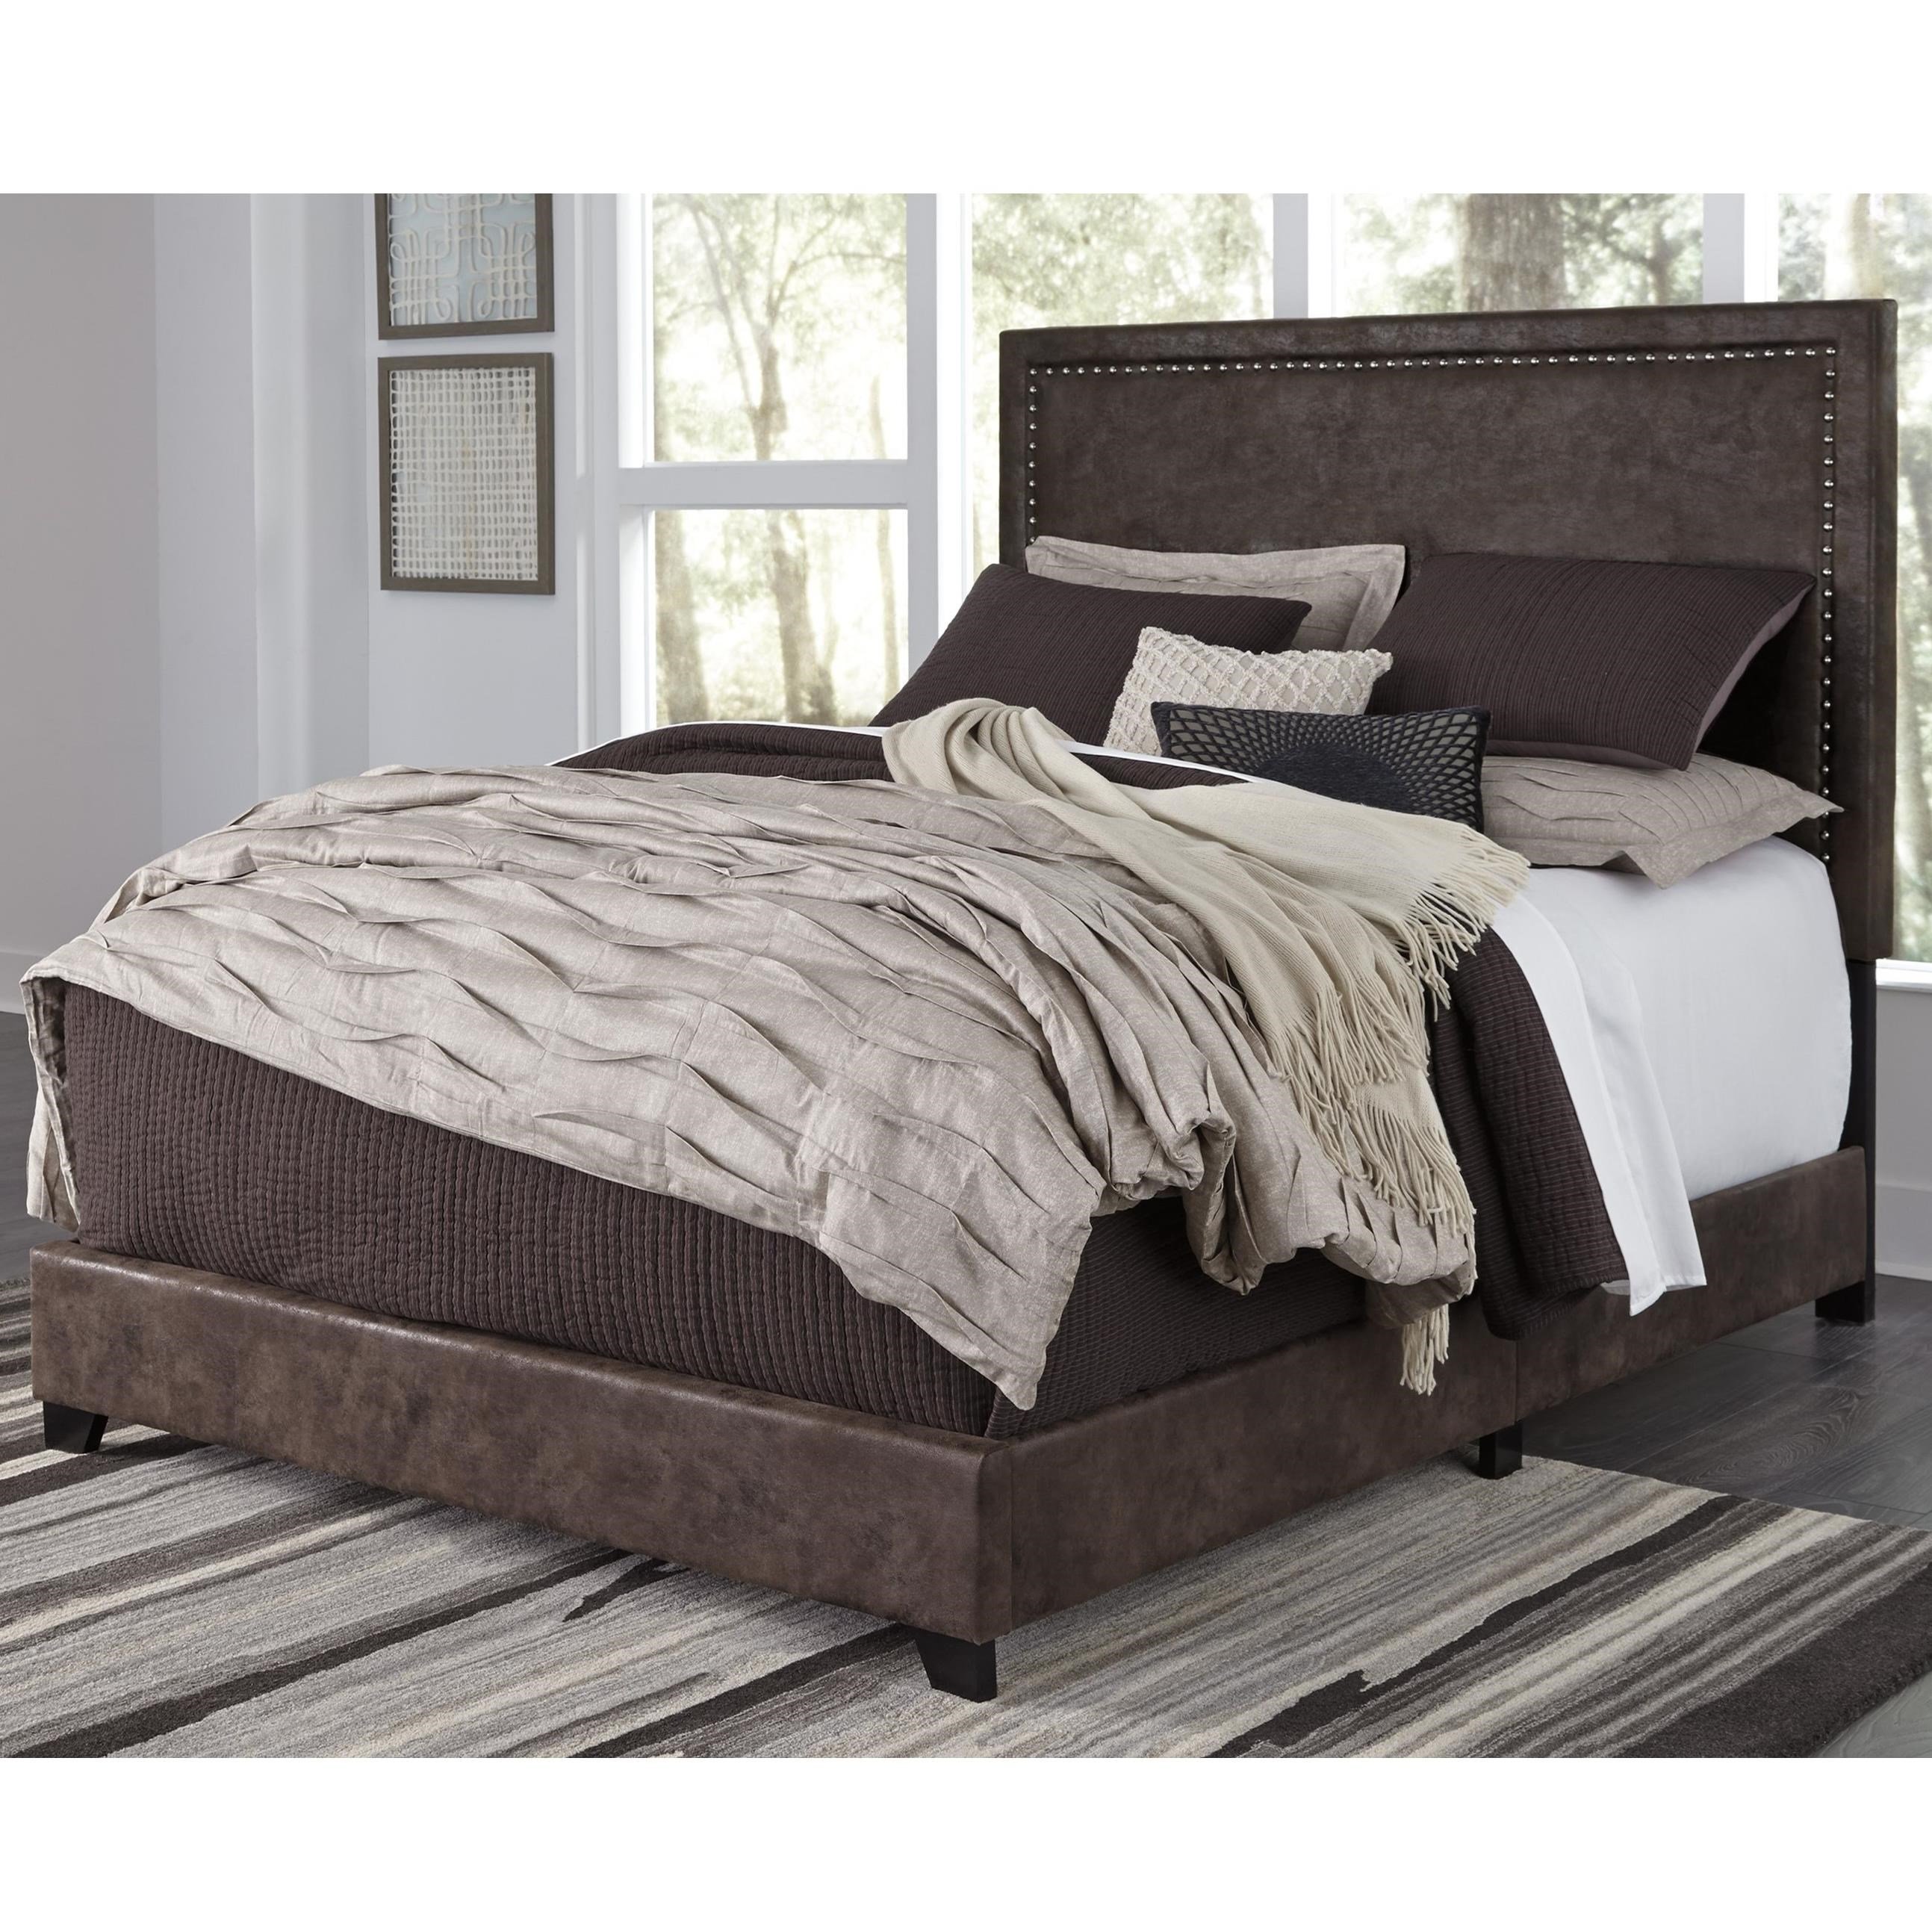 Dolante King Upholstered Bed  by Signature Design by Ashley at Standard Furniture